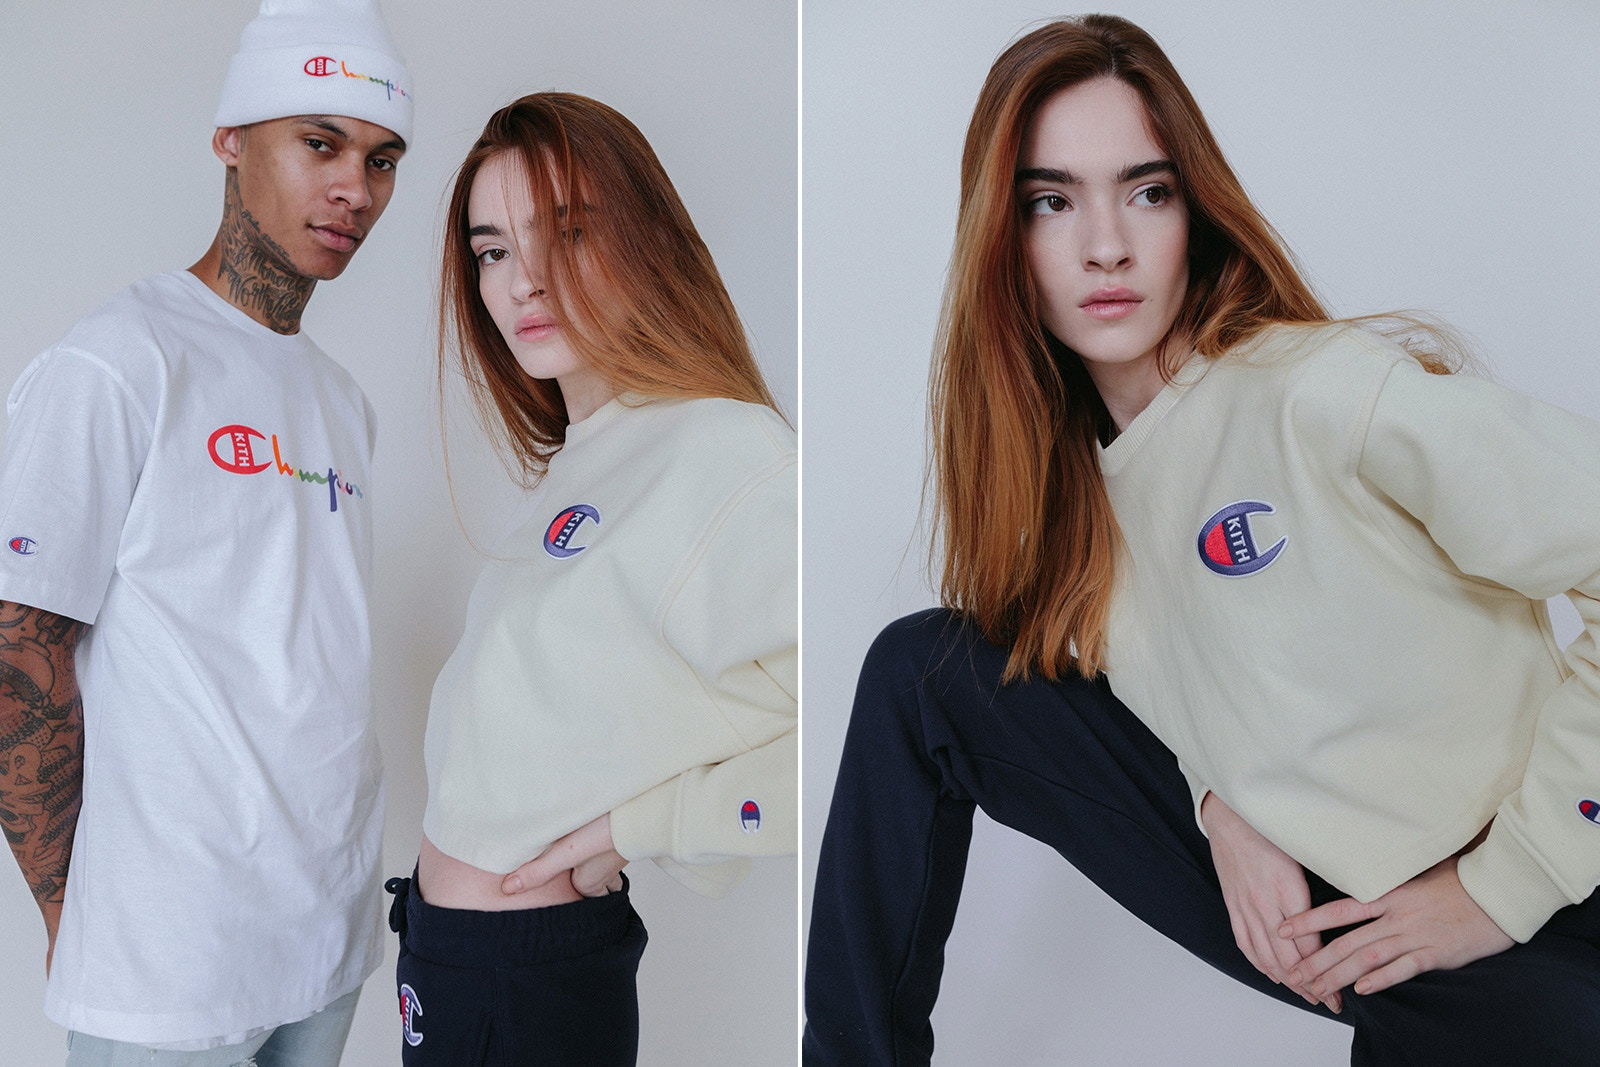 KITH rielabora il logo di Champion per una nuova capsule collection | Collater.al 3